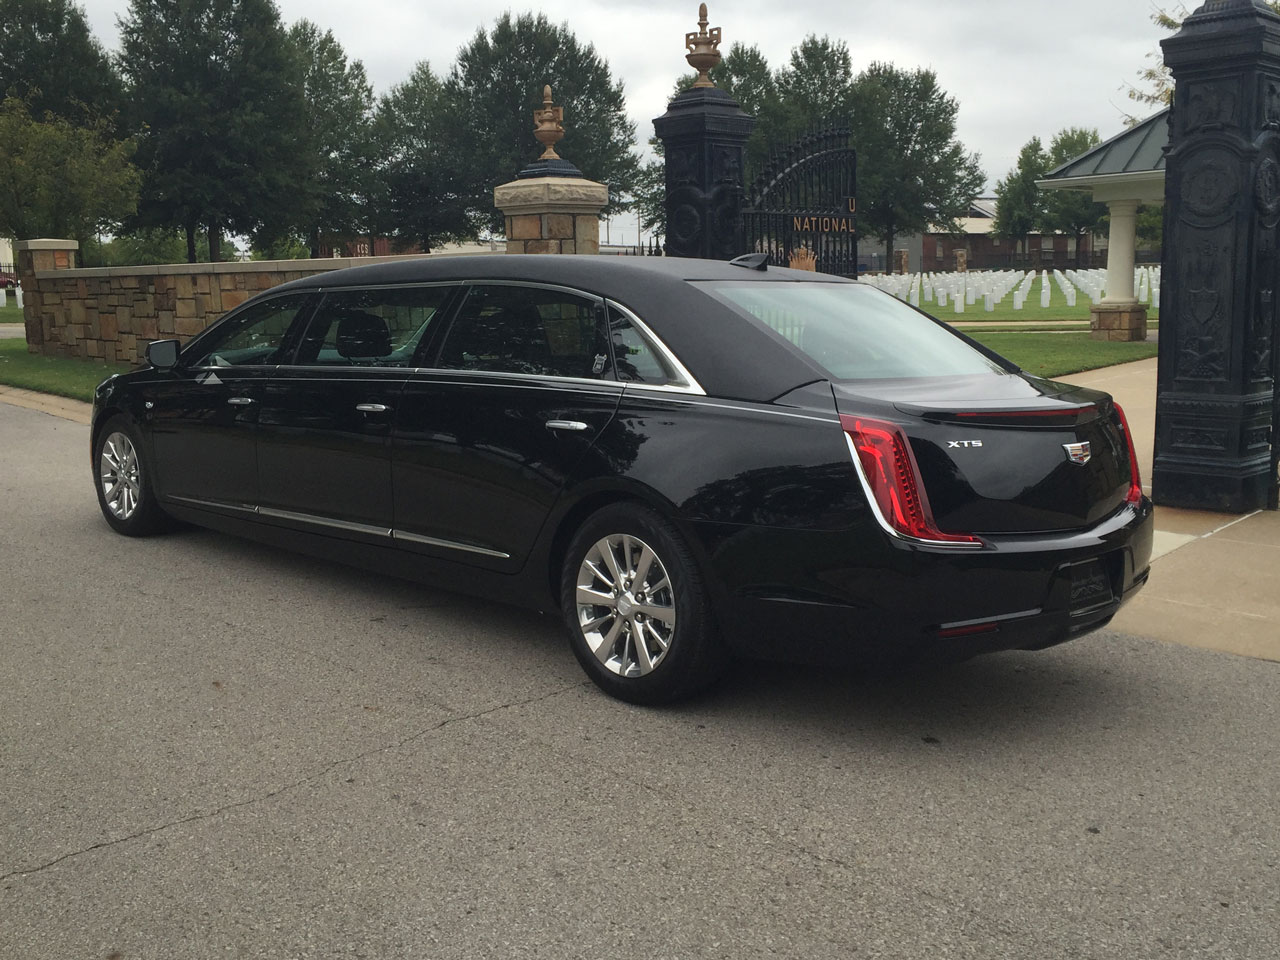 2019 Armbruster Stageway Cadillac L6 52 Stretch Limousine 10